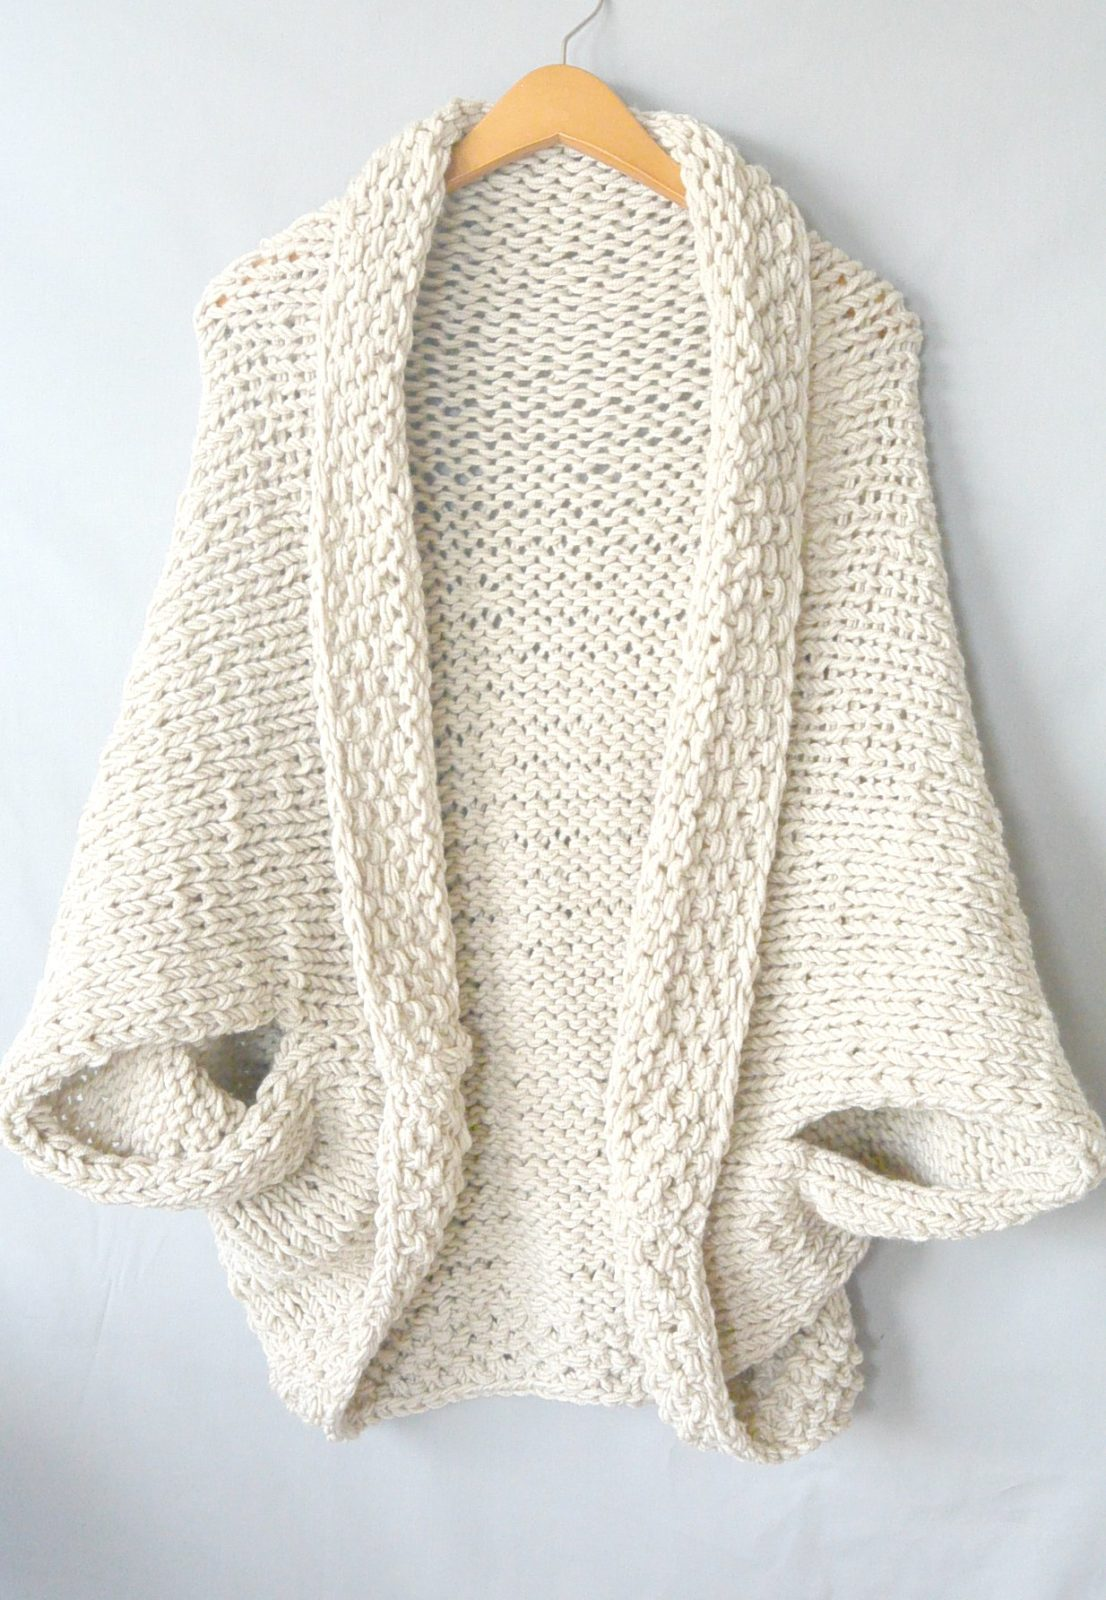 Patterns For Knitted Sweaters : Easy Knit Blanket Sweater Pattern   Mama In A Stitch